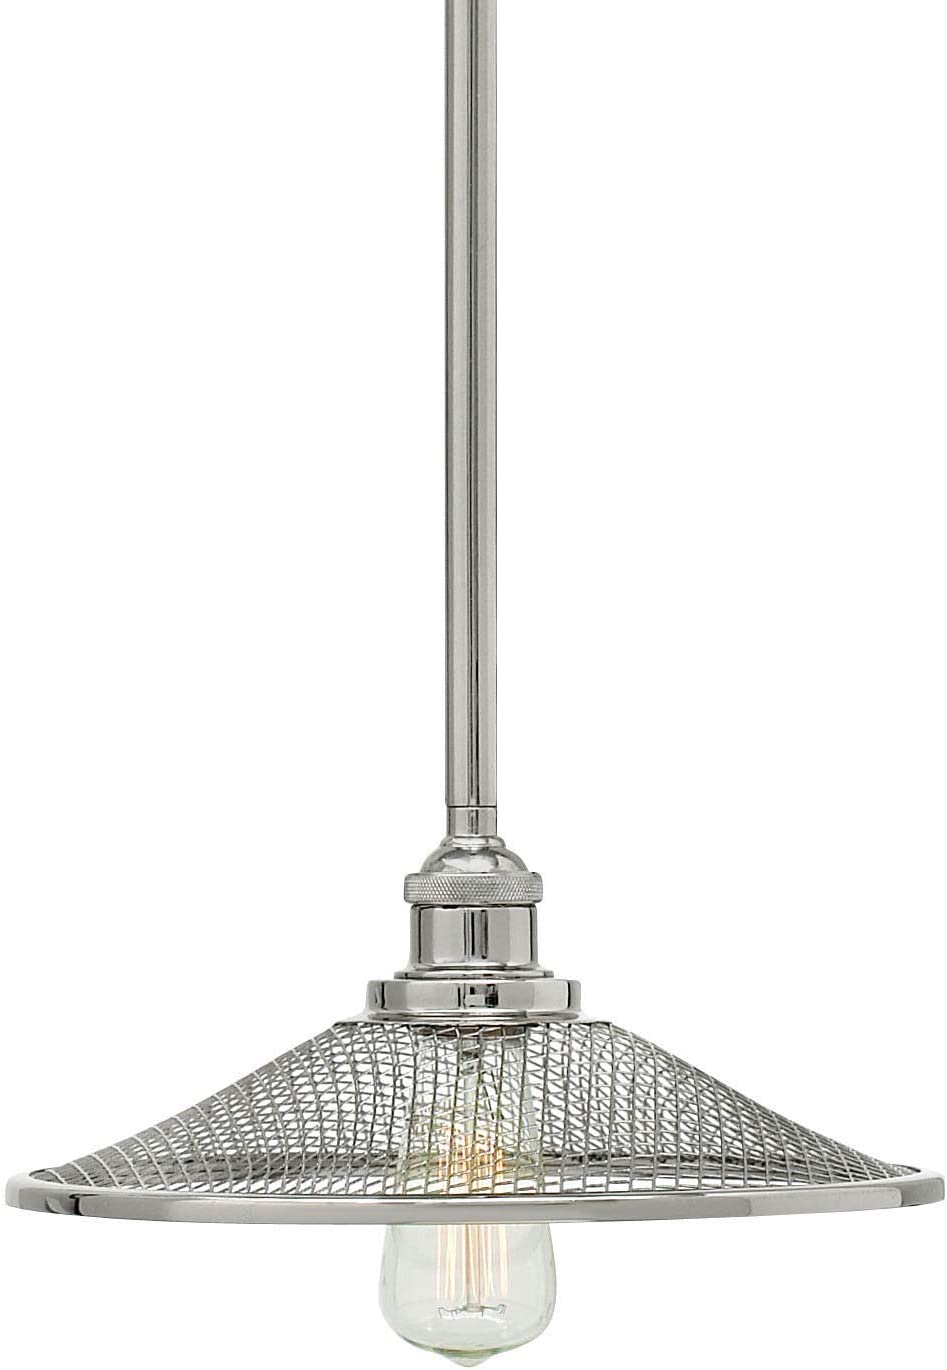 Hinkley 4367PN Restoration One Light Pendant from Rigby collection in Chrome, Pol. Nckl.finish,